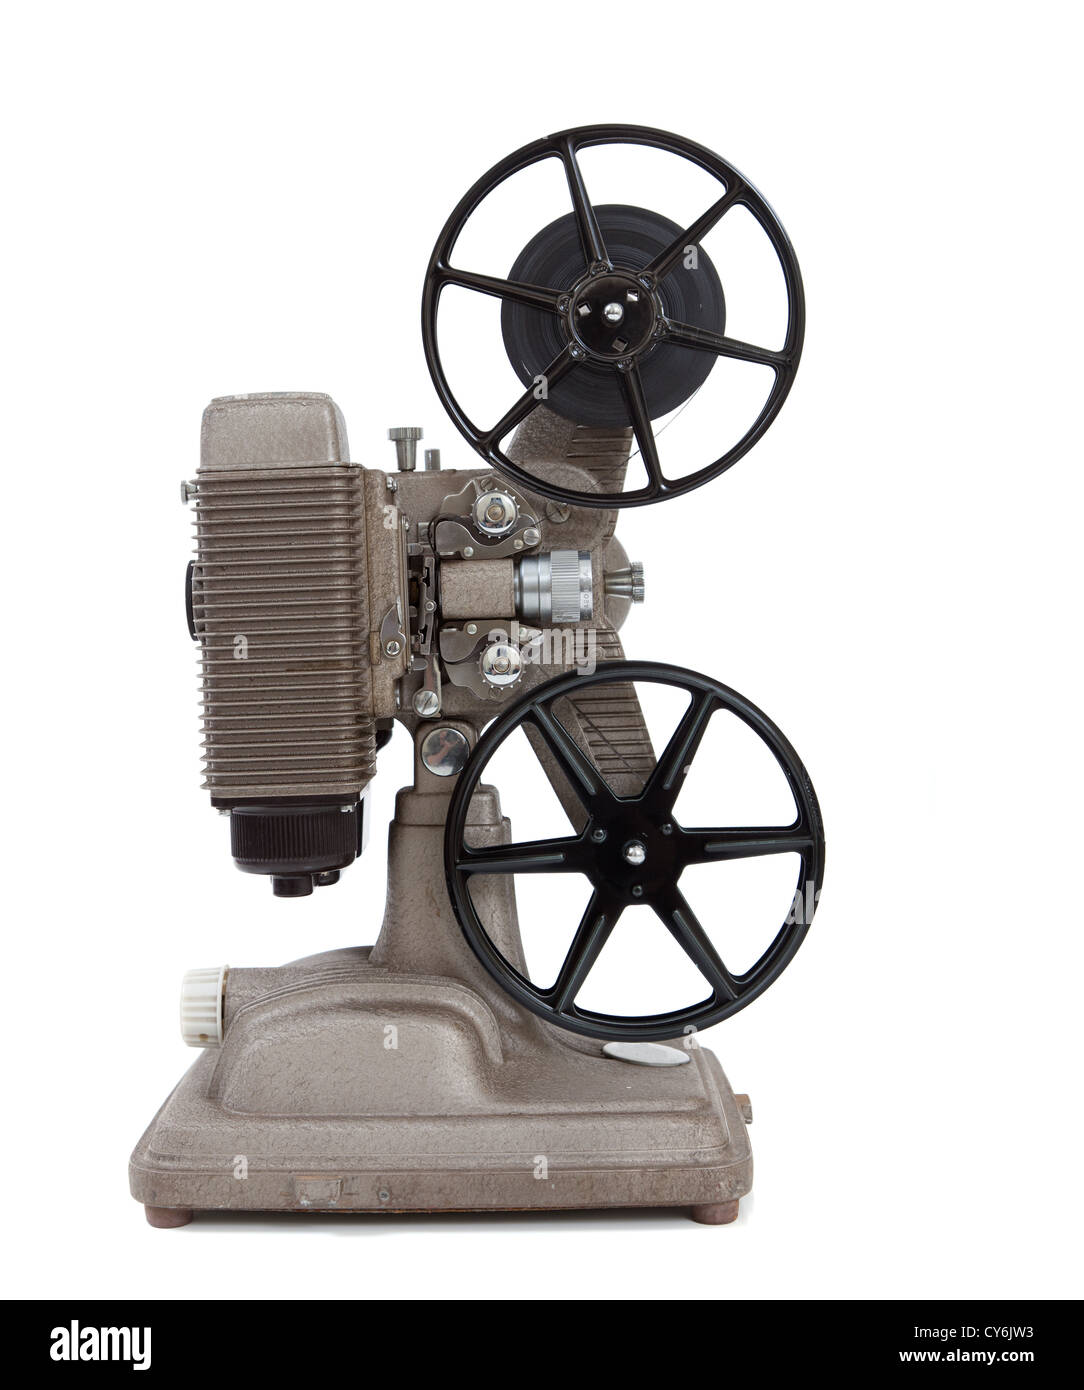 A vintage 8mm movie projector on a white background - Stock Image